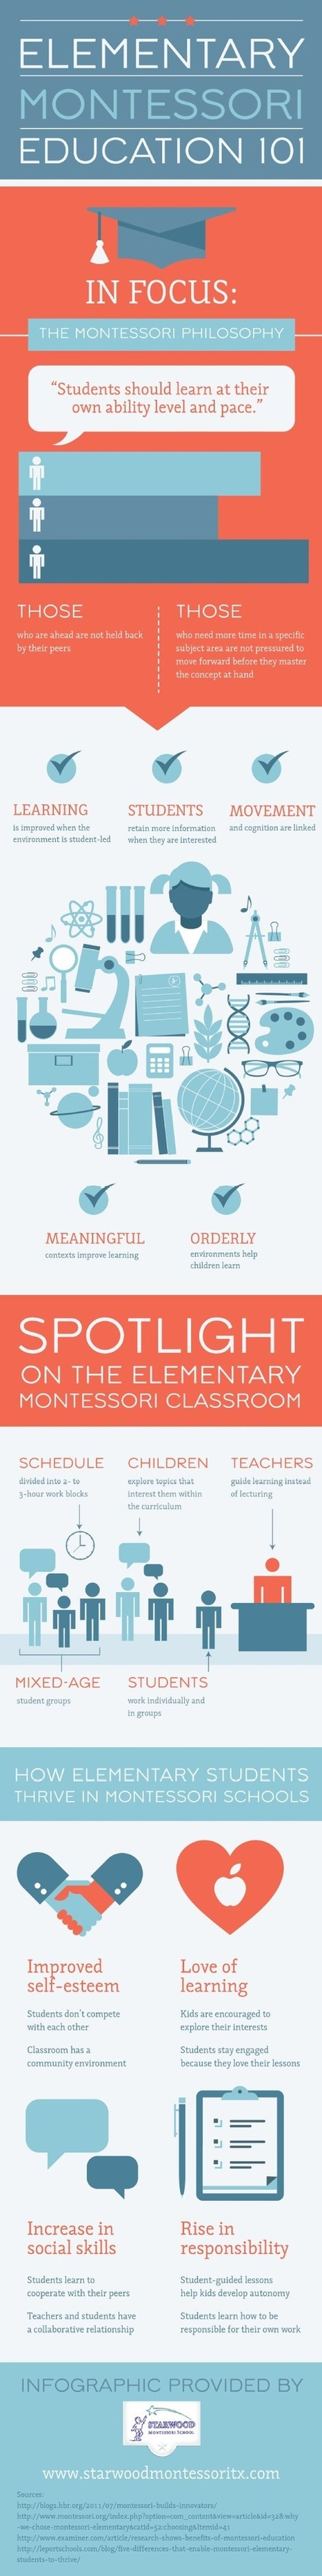 Elementary Montessori Education 101 - Starwood Montessori, Frisco ... | Early Learning | Scoop.it